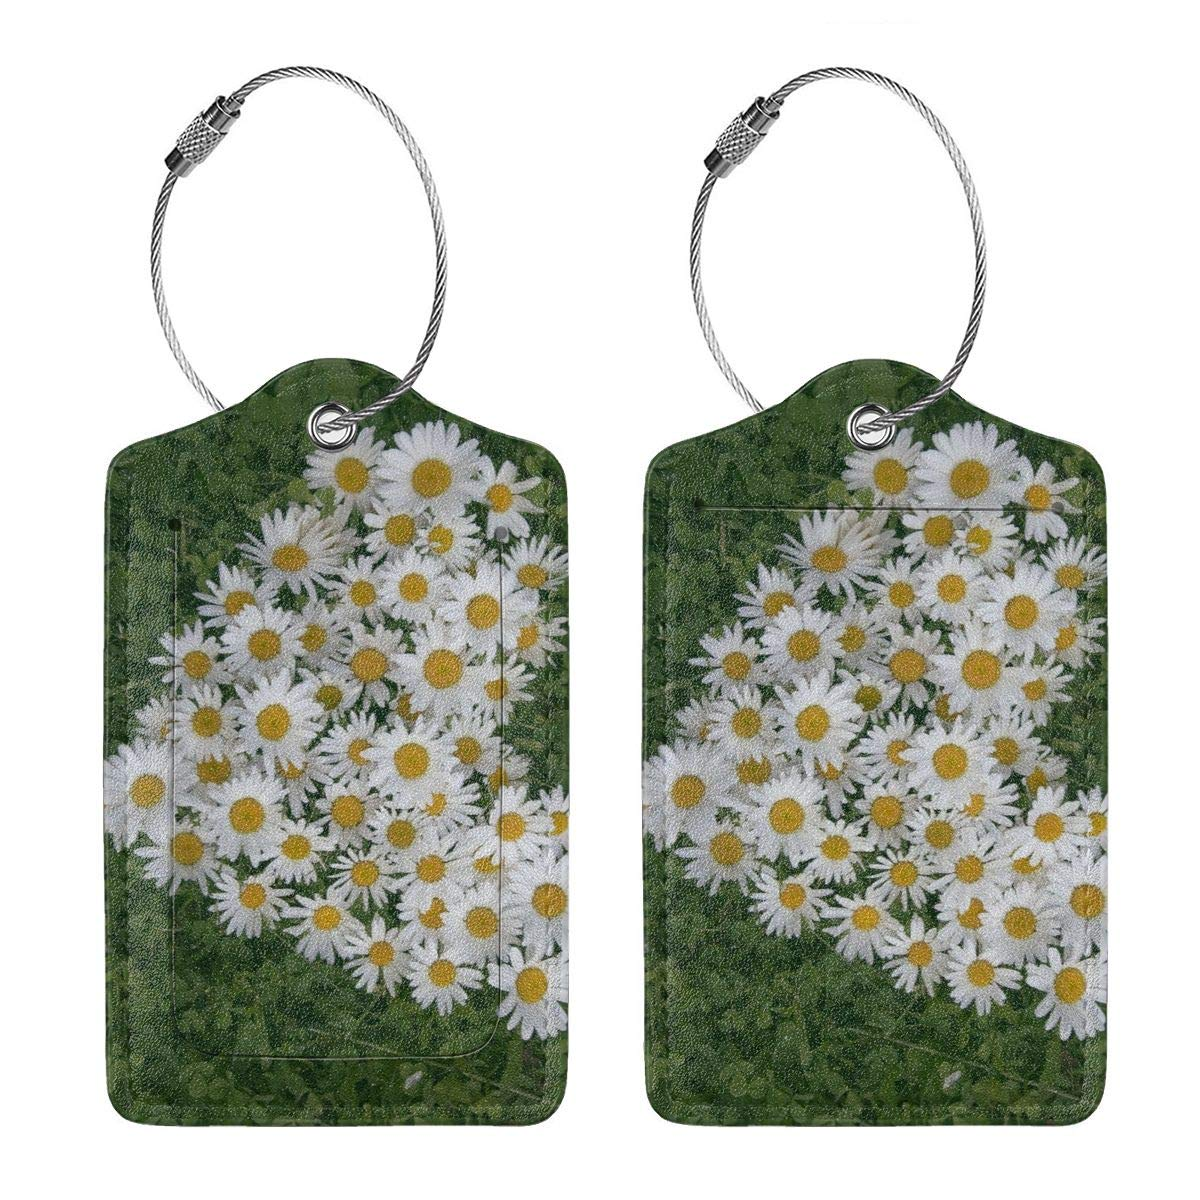 Daisy Flower Travel Luggage Tags With Full Privacy Cover Leather Case And Stainless Steel Loop